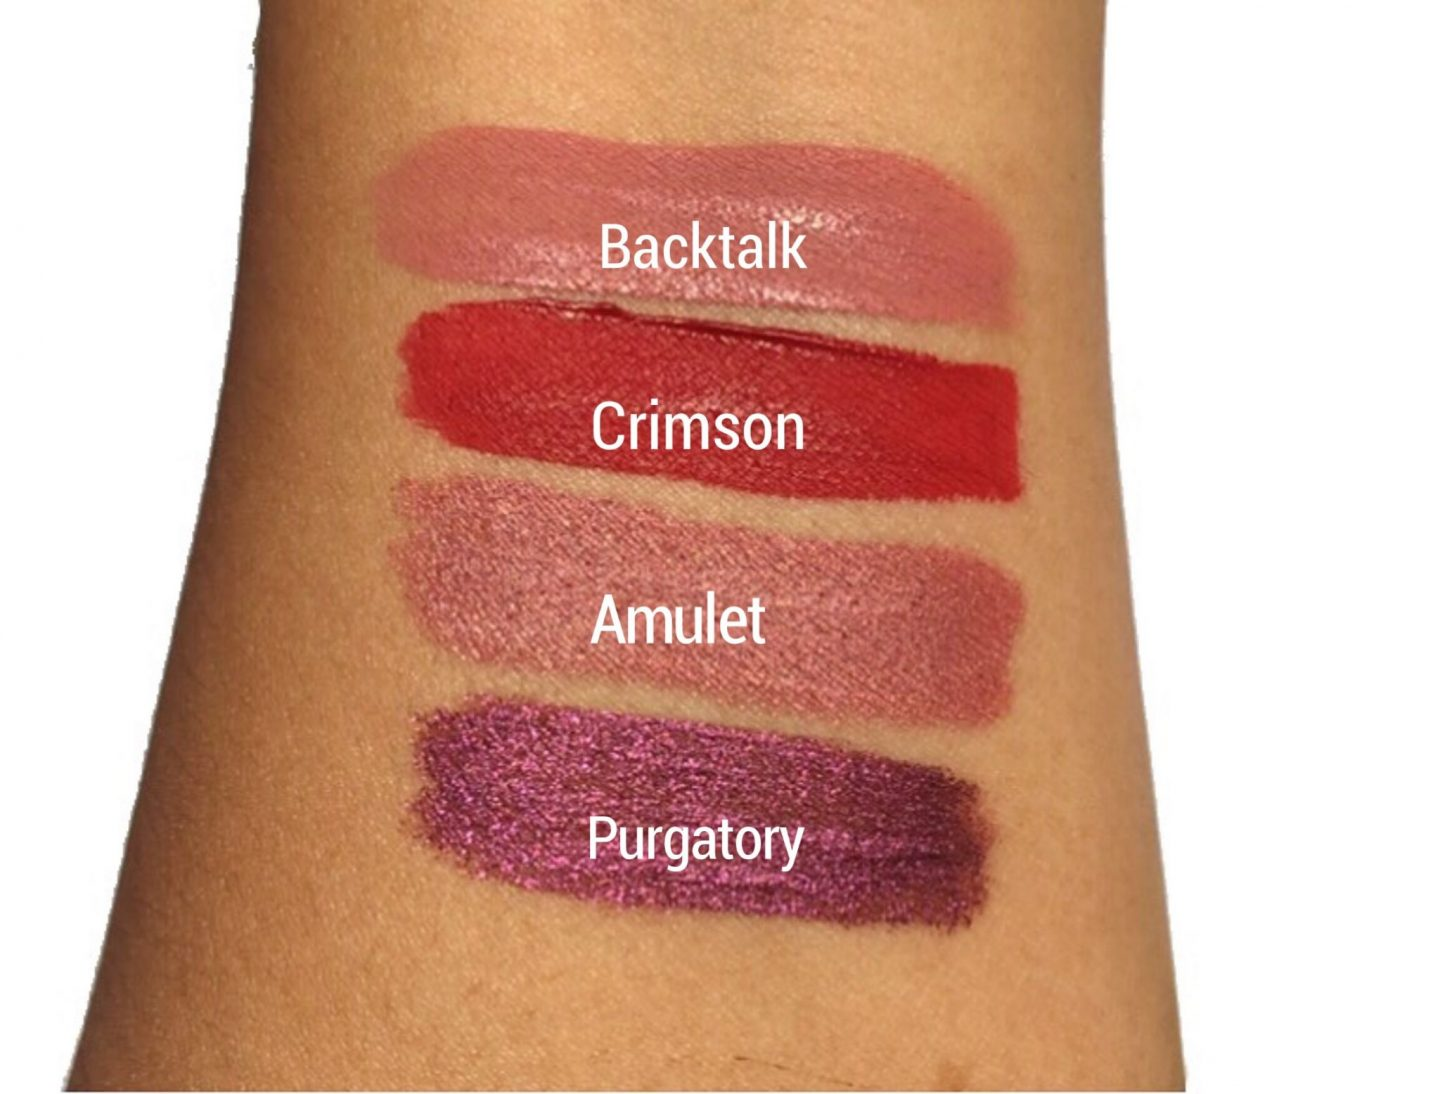 Urban Decay Little Liquid Lipstick Vice Set Swatches Review |www.calibeaute.com